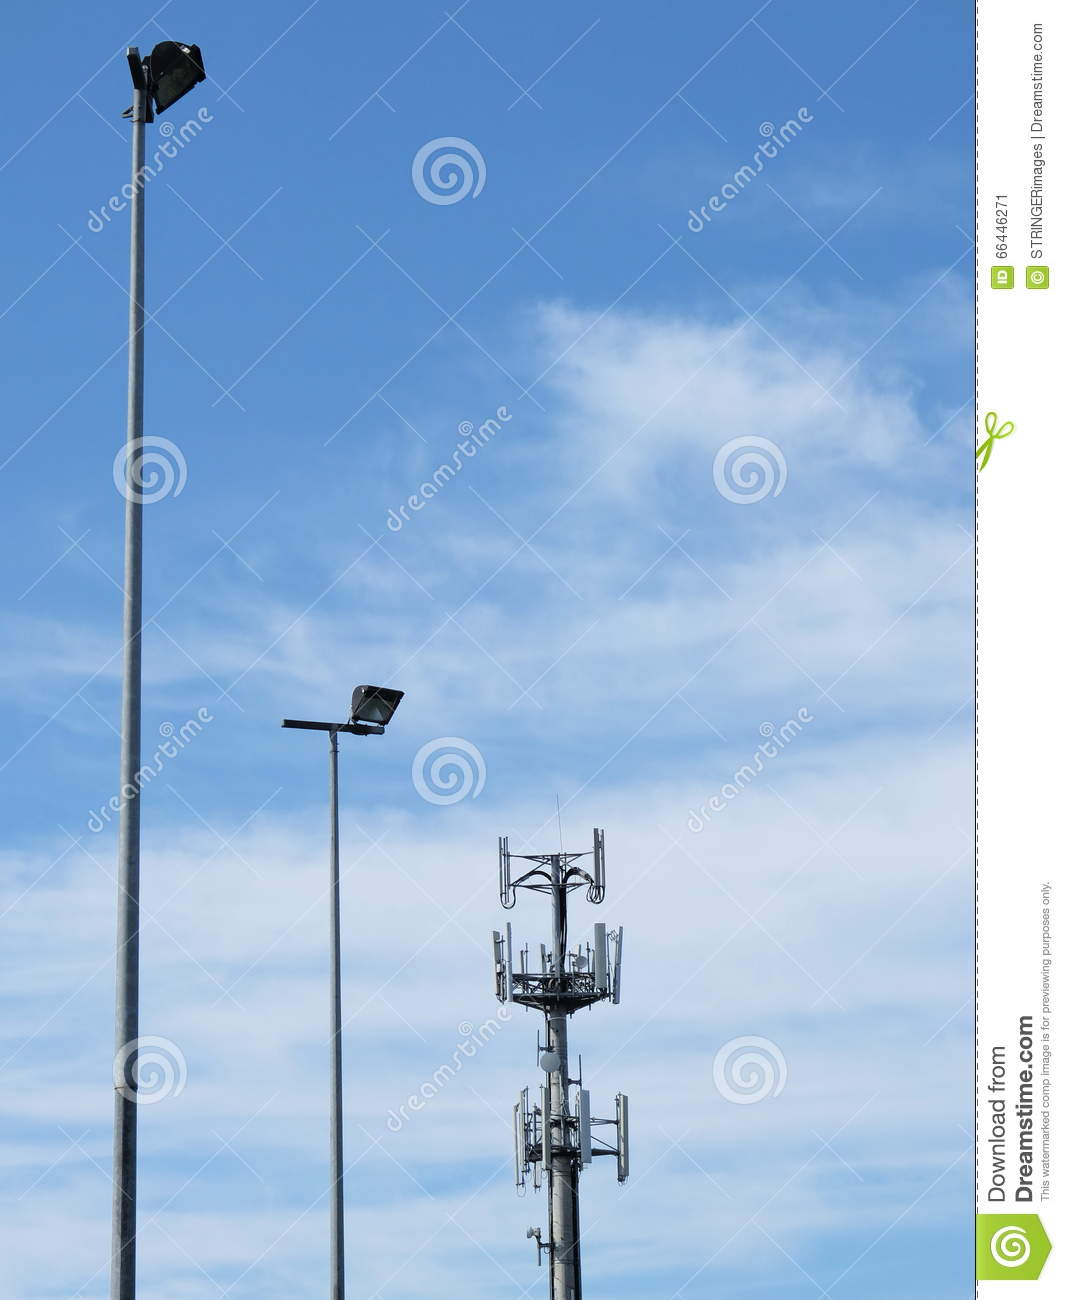 Telecommunications Cell Phone Tower And Light Poles Stock